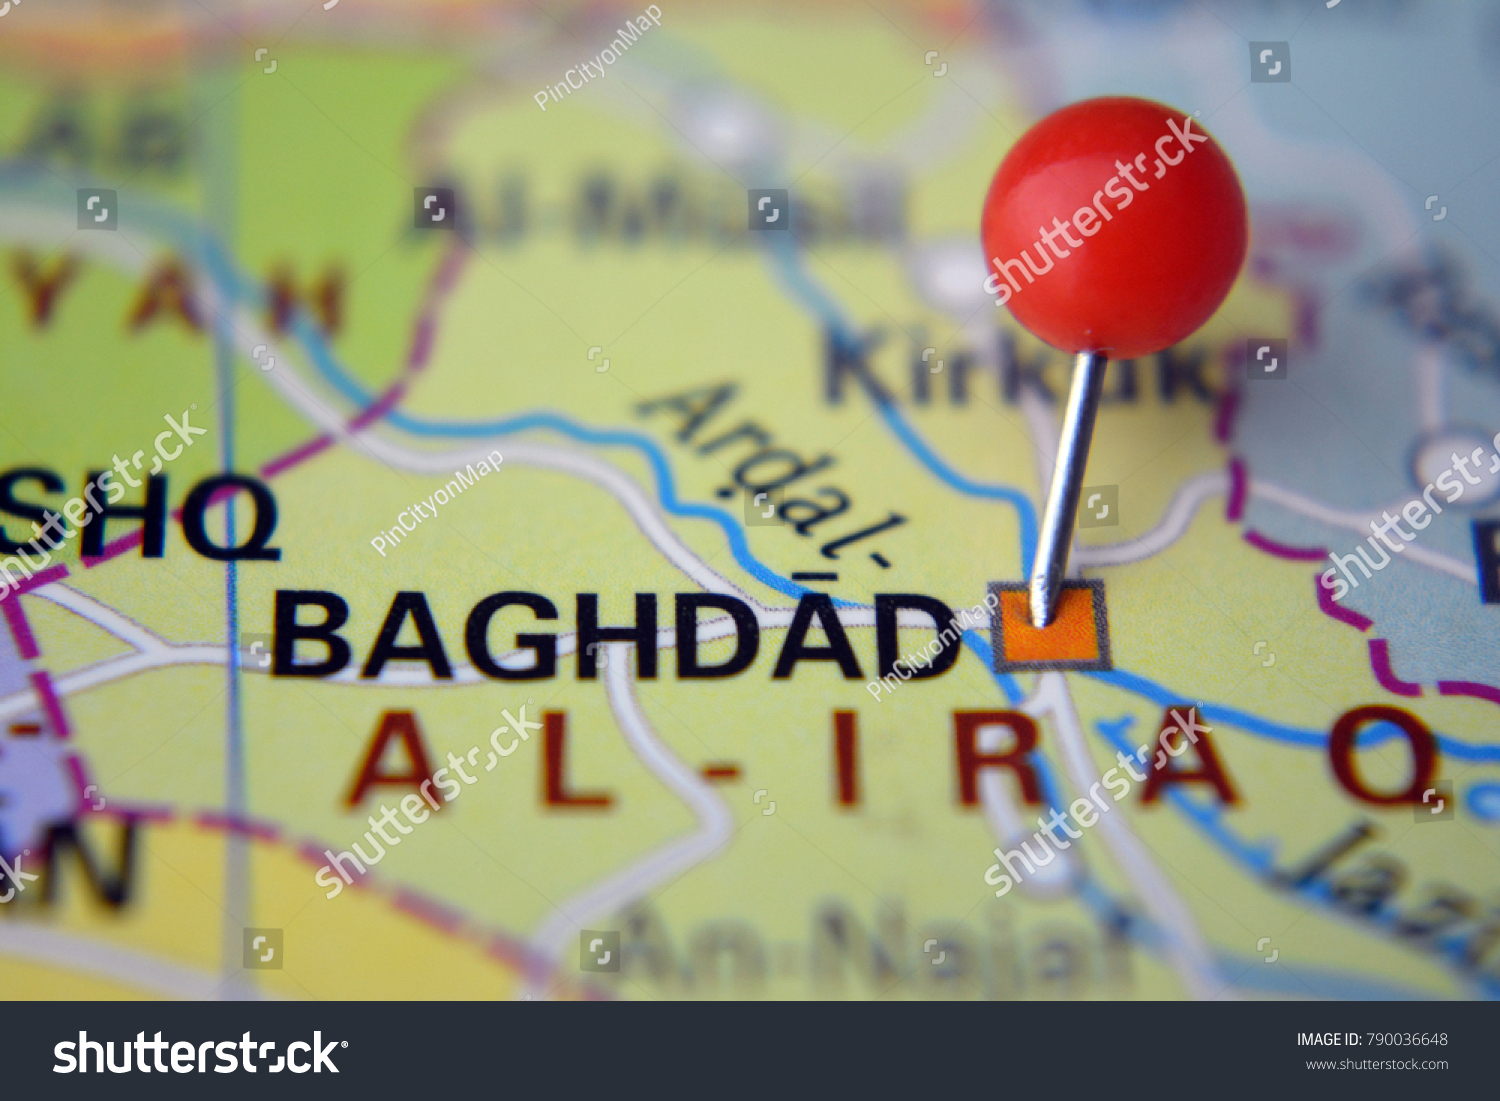 Pin Baghdad On Map Iraq Stock Photo (Edit Now) 790036648 - Shutterstock